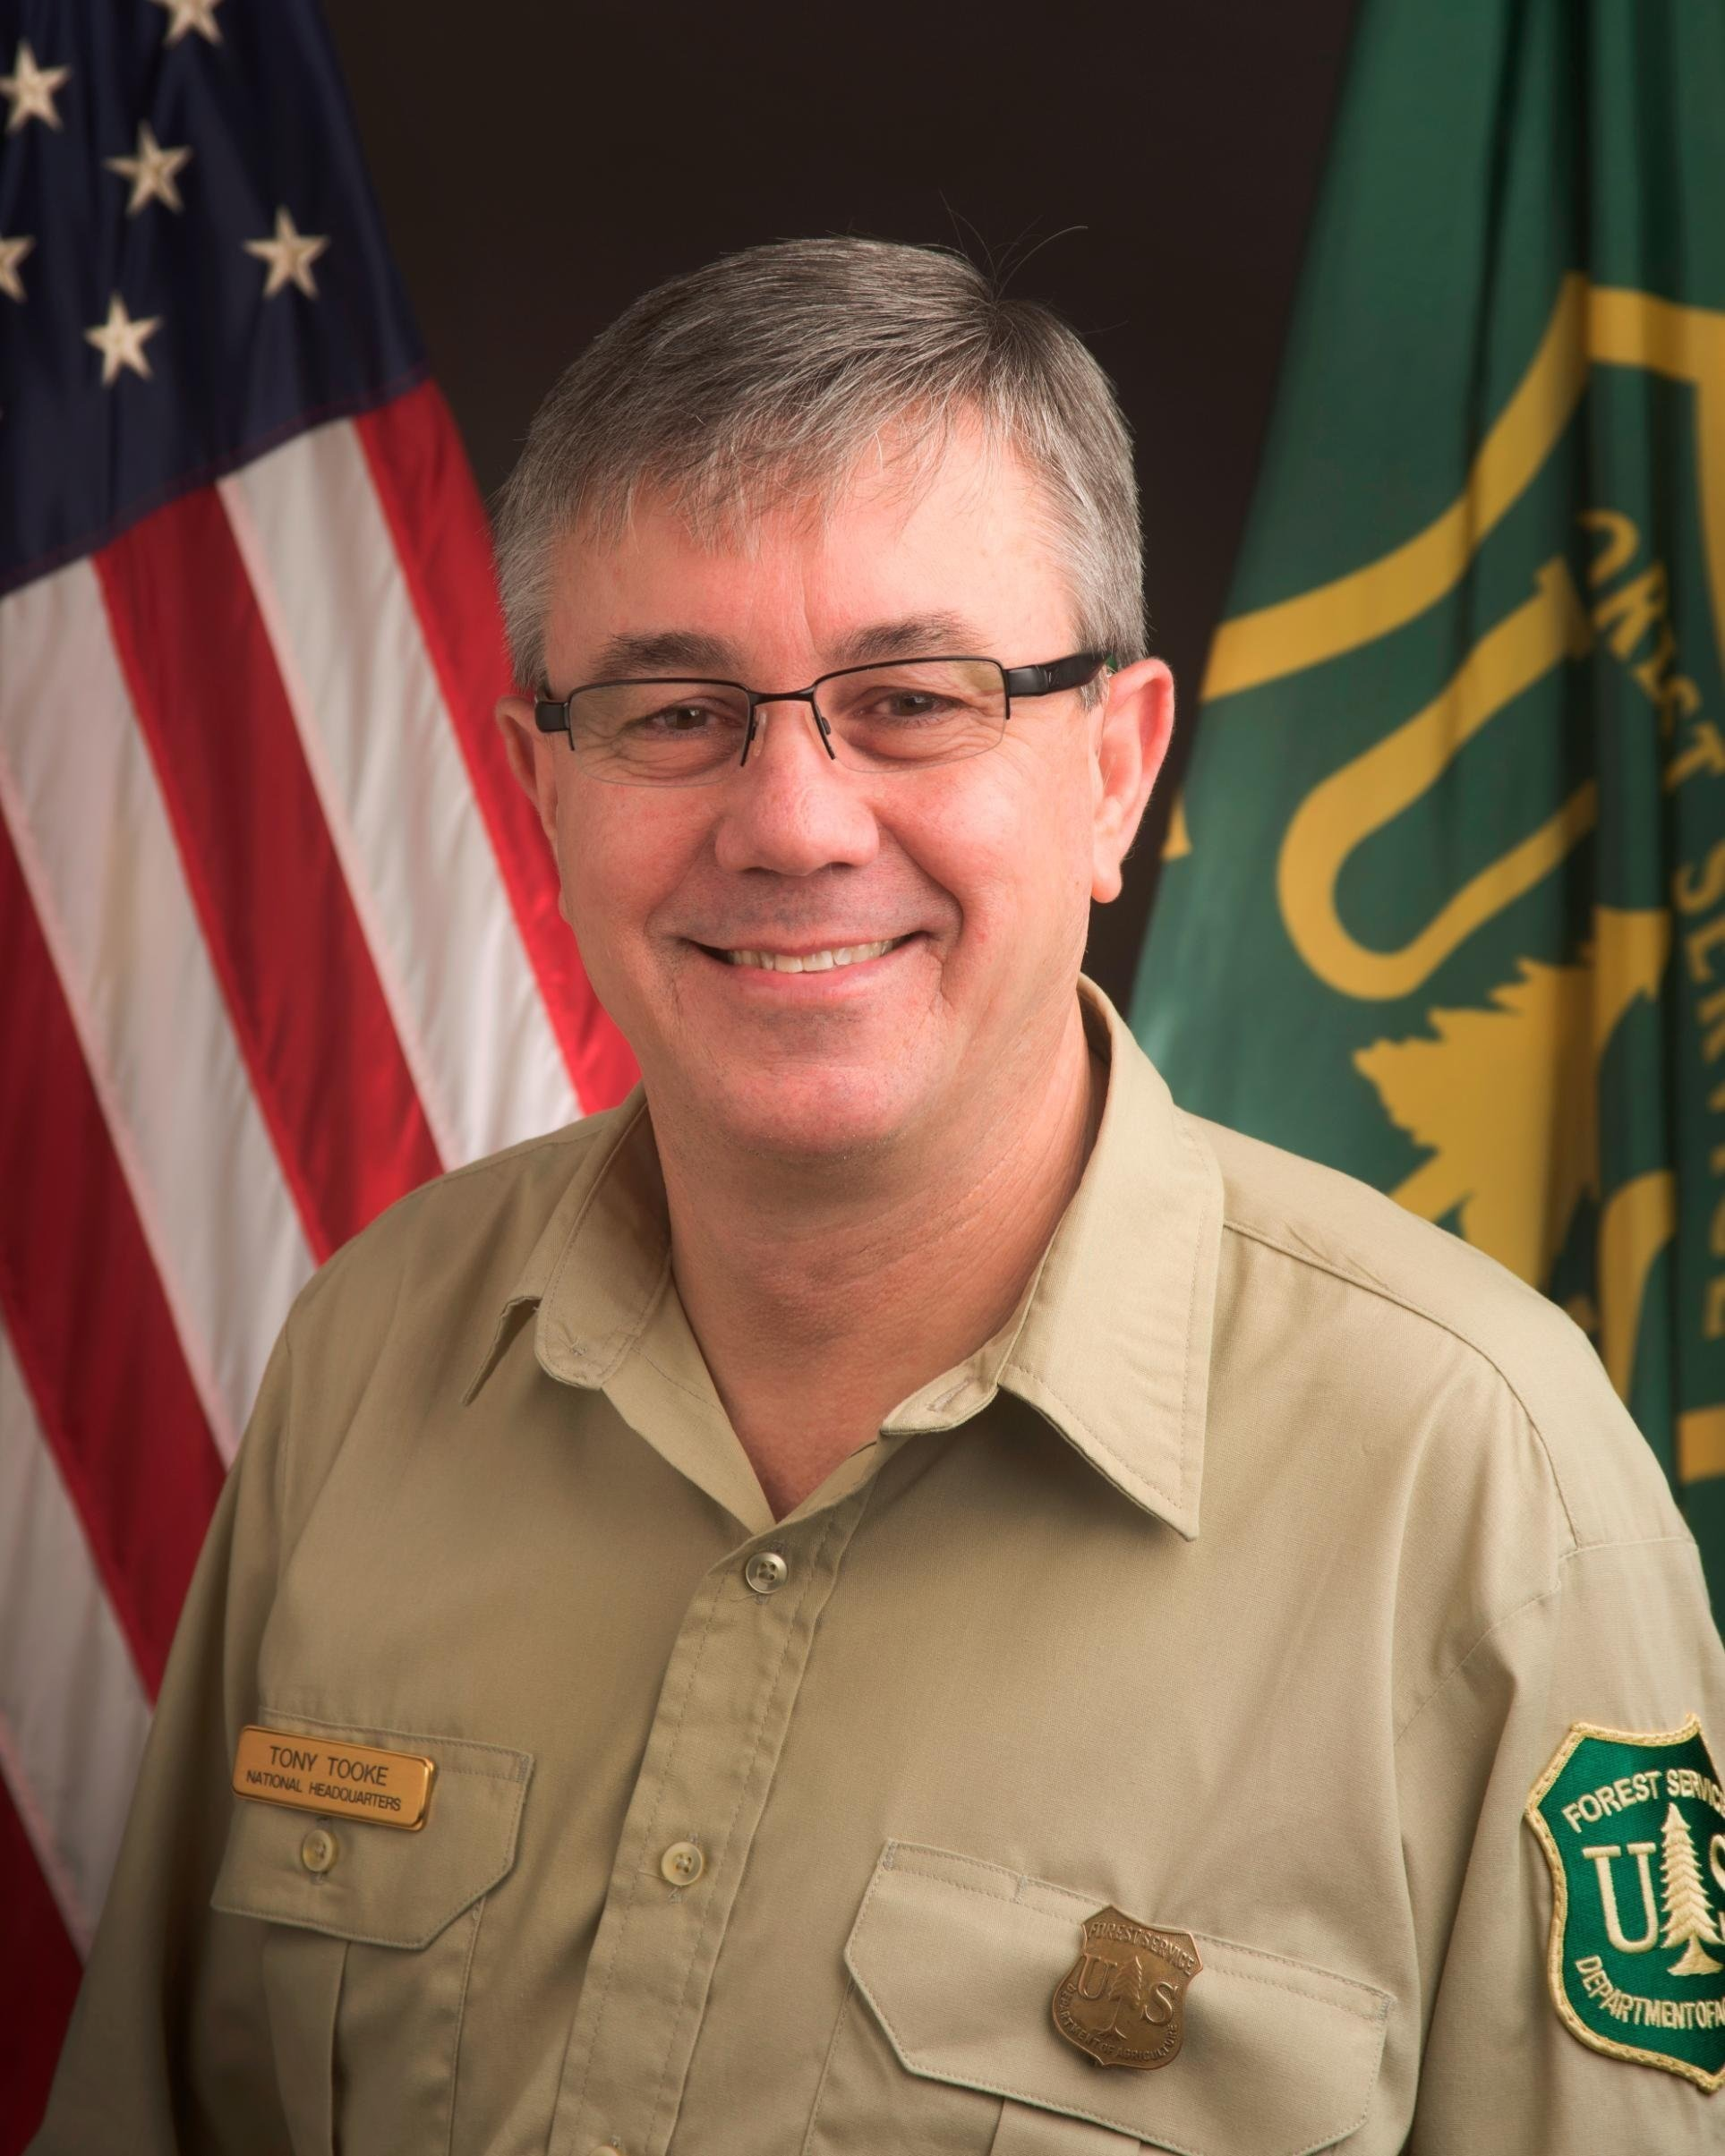 The head of the US Forest Service has resigned amid reports that the agency was looking into misconduct allegations against him, Politico reported Wednesday.